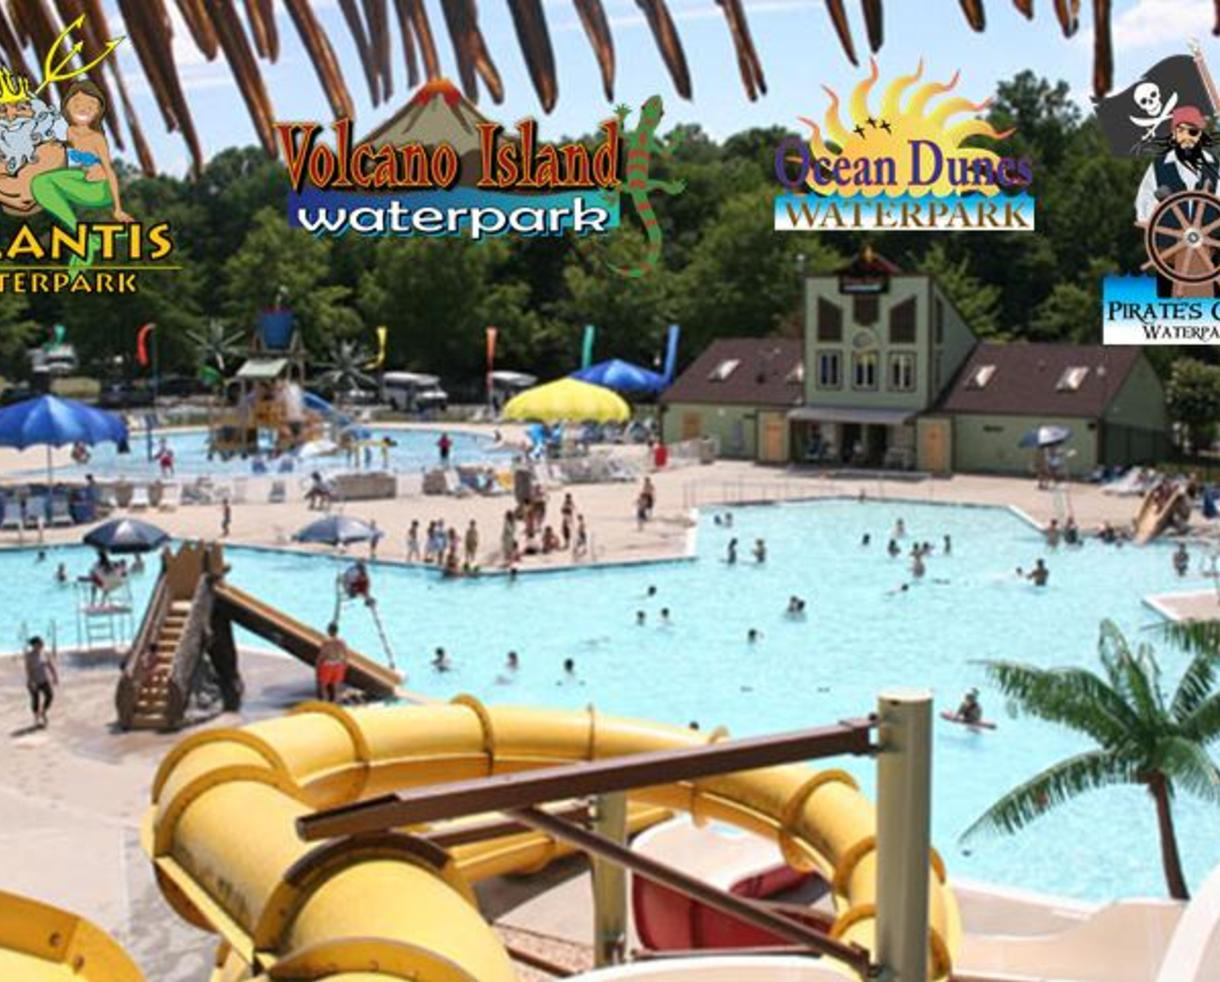 9046d2d4eb3 $10 for 4-Pack of Waterpark Tickets in Northern Virginia - Atlantis, Pirate's  Cove, Ocean Dunes or Volcano Island - Weekday Afternoon Special! (50% off)